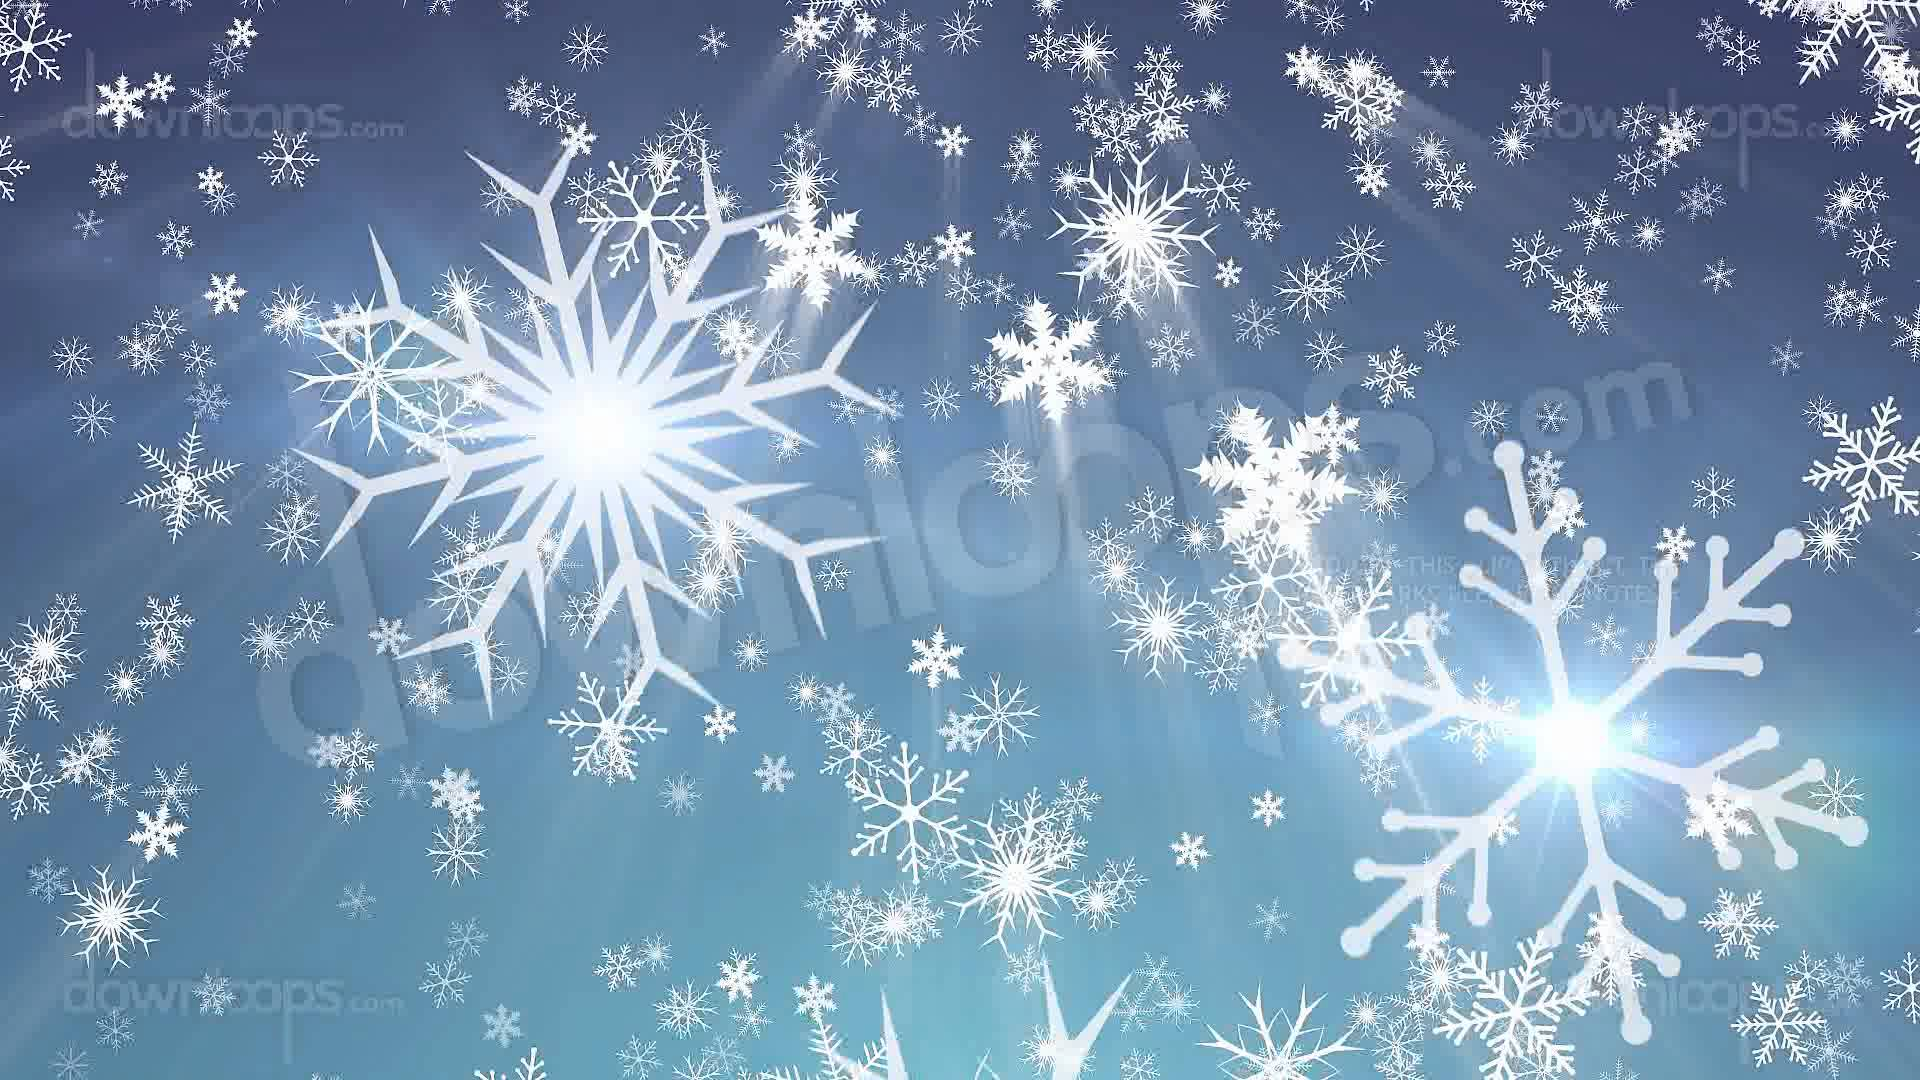 background gallery snow animated - photo #22